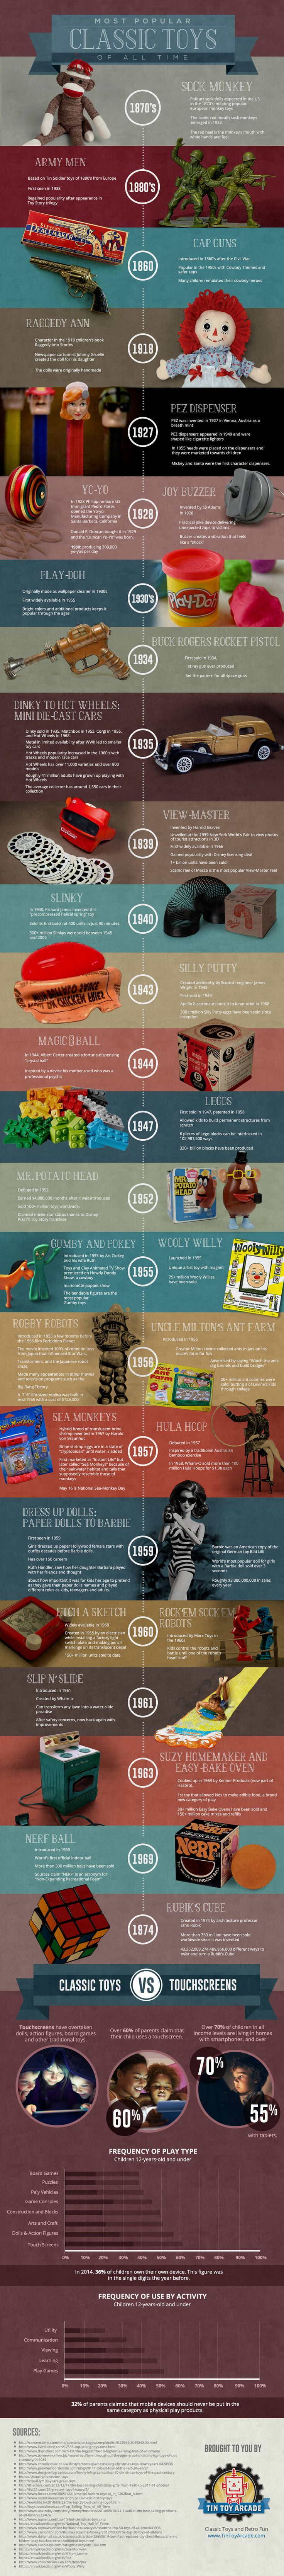 Most Popular Classic Toys of All Time